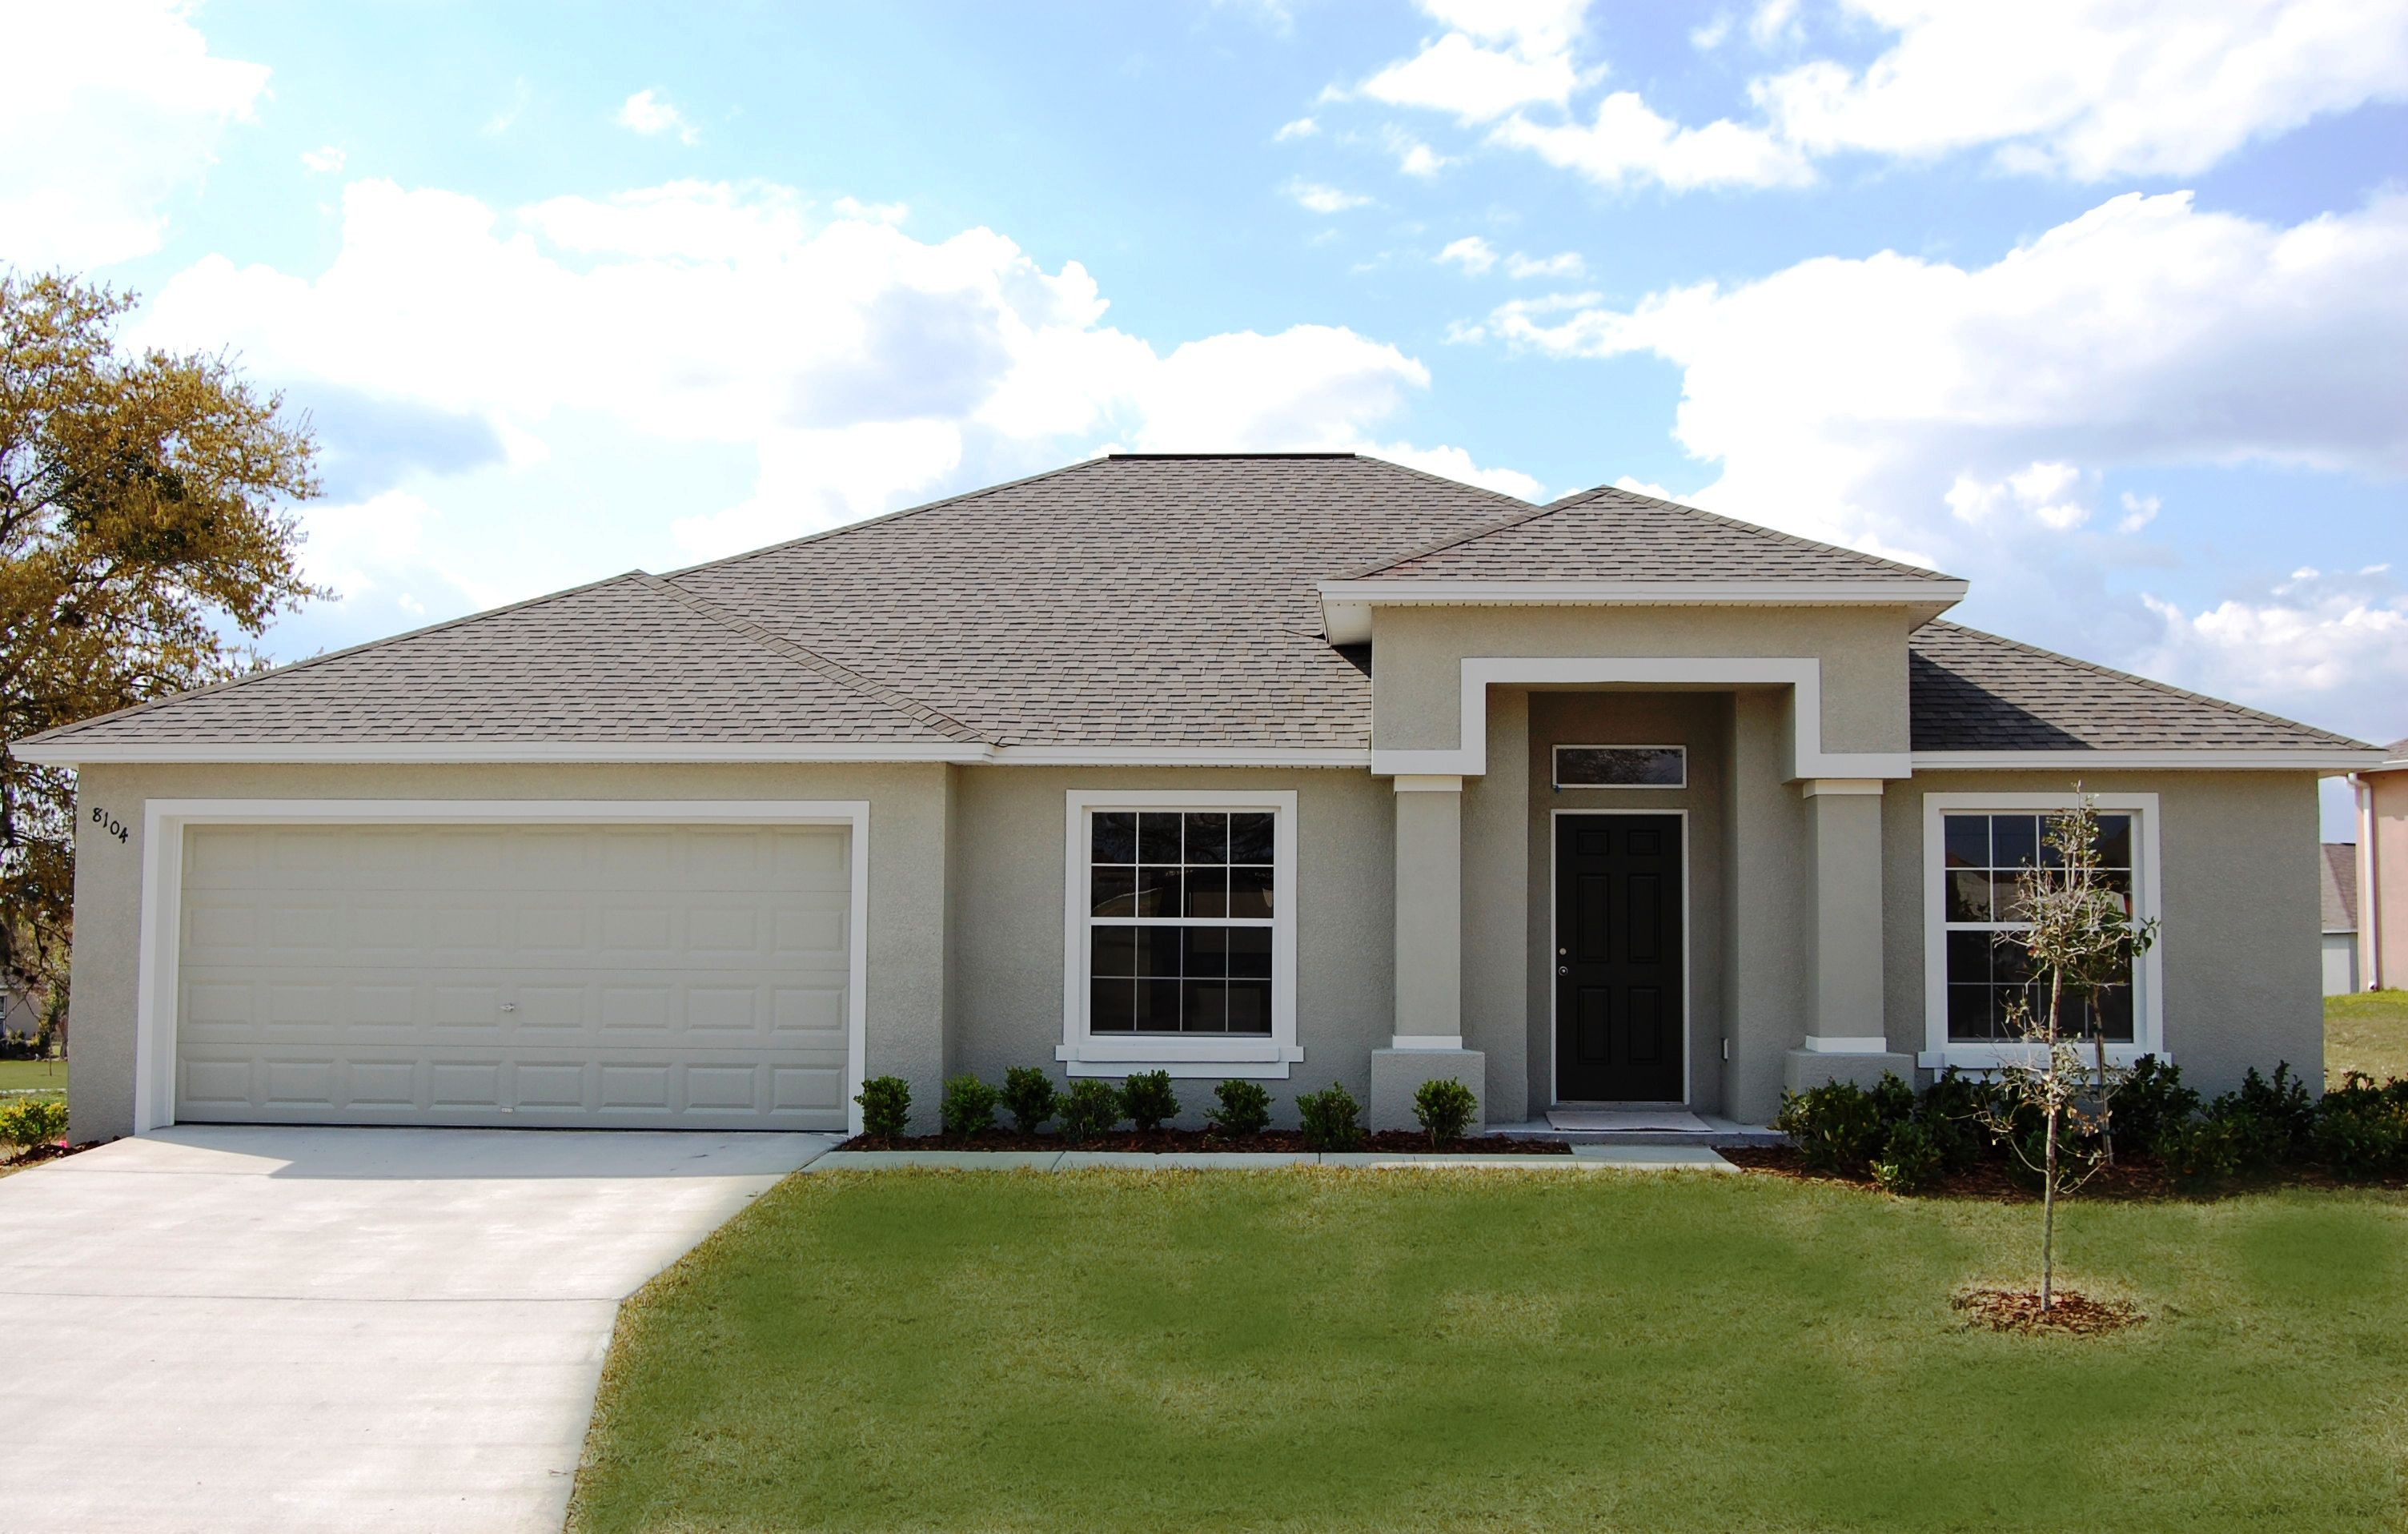 Hawthorne Southern Homes Of Polk County Southern Homes New Homes Home